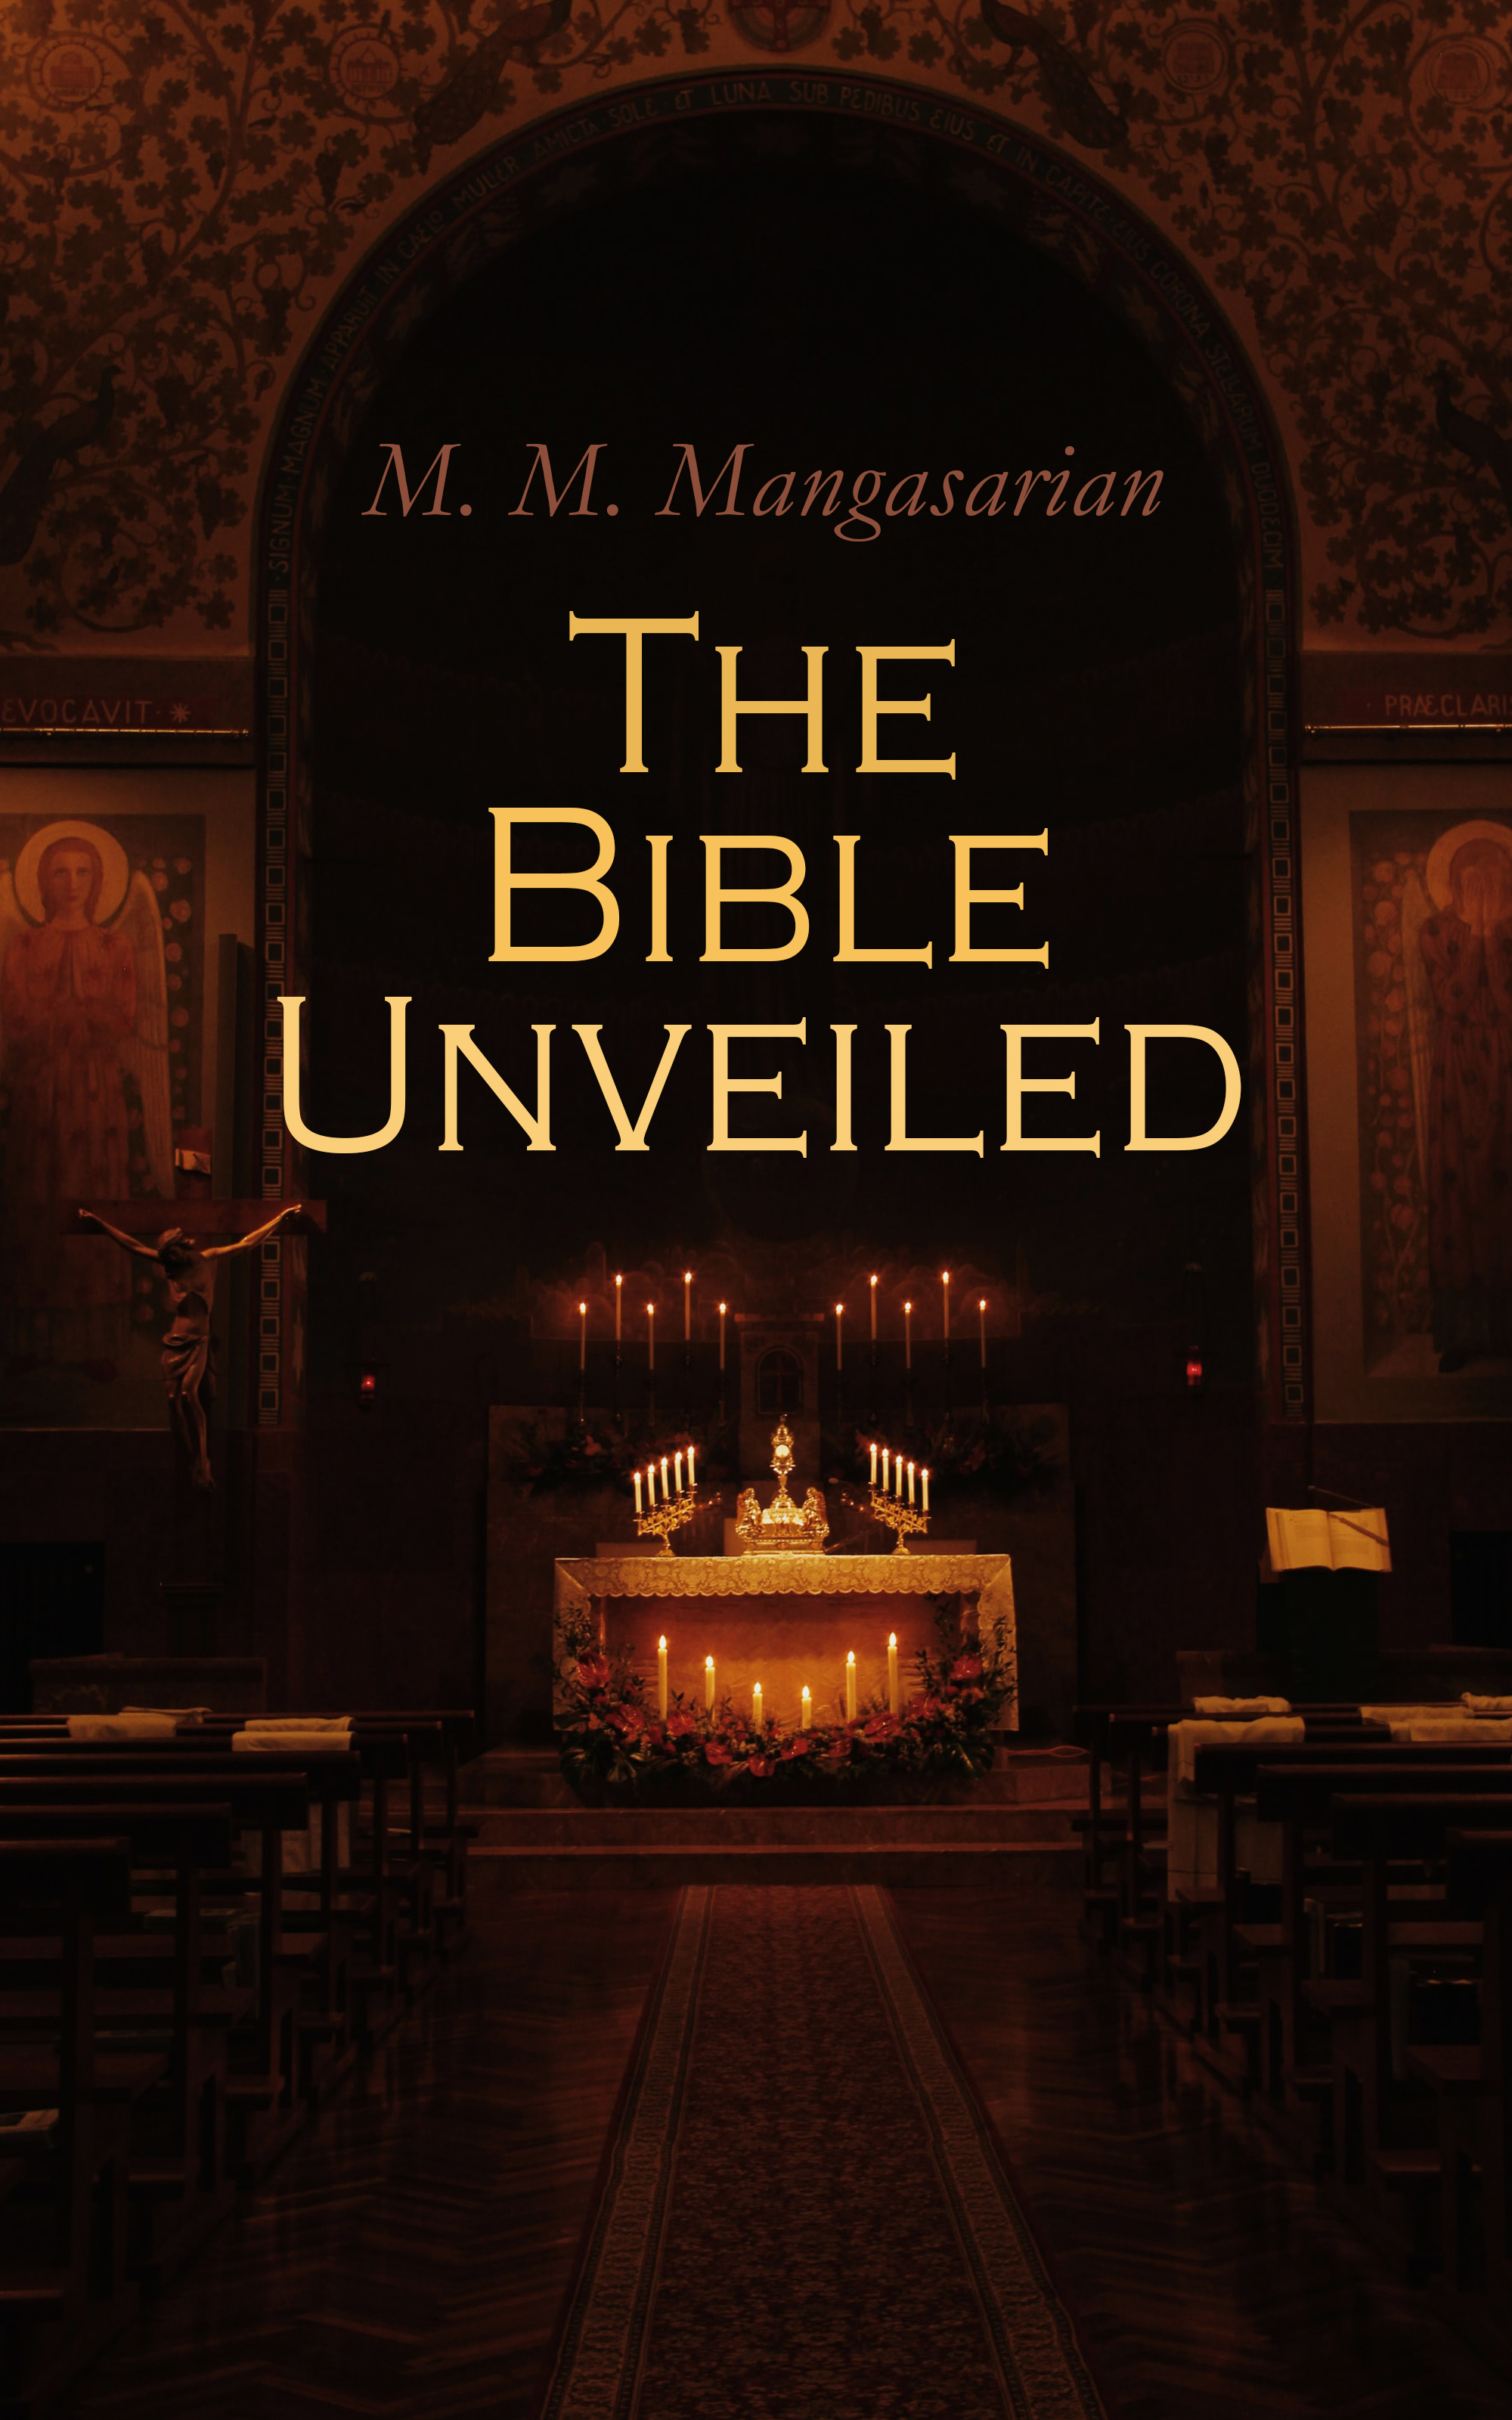 M. M. Mangasarian The Bible Unveiled